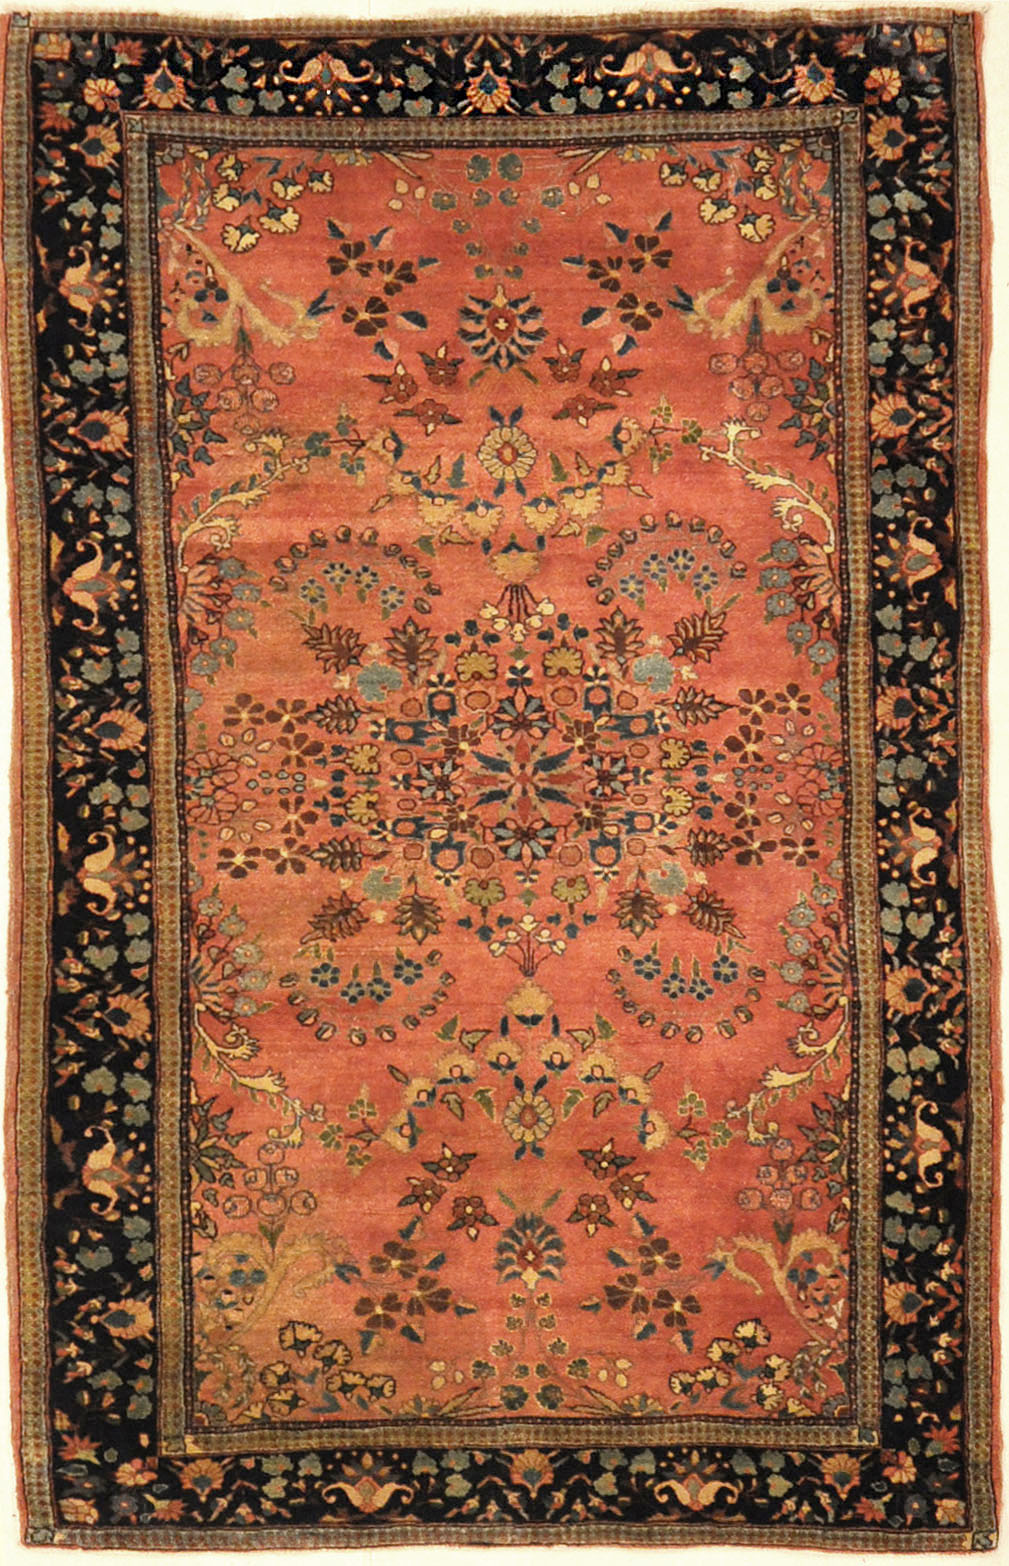 Antique Mohajesan Sarouk Finest Example Of It's Kind. A piece of genuine antique woven carpet art sold by the Santa Barbara Design Center, Rugs and More.